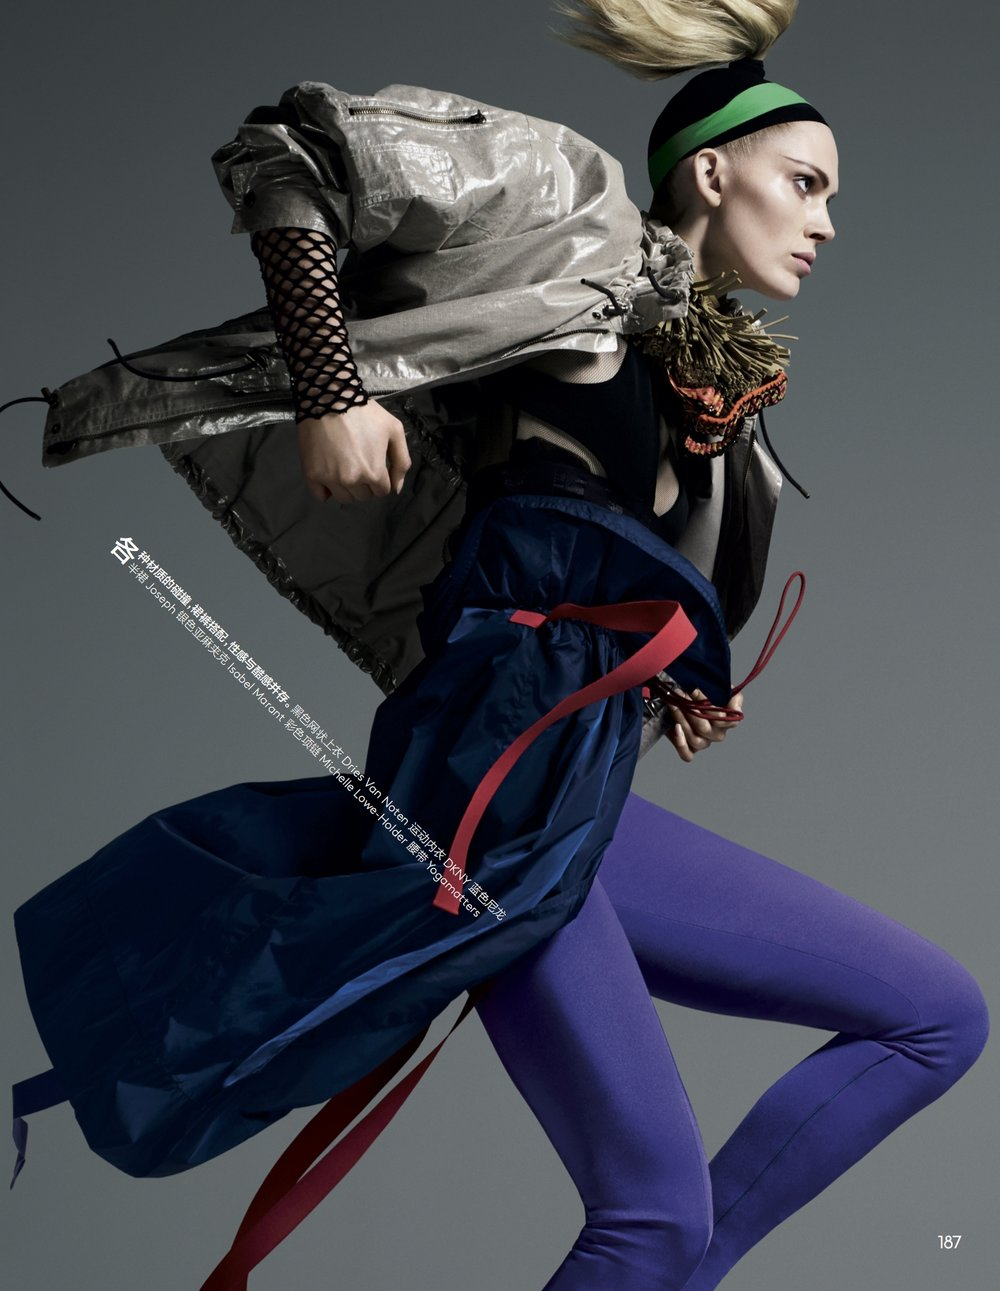 Vogue China - MLH Necklace - Photography by Solve Sundsbo / Styling Beat Bollinger